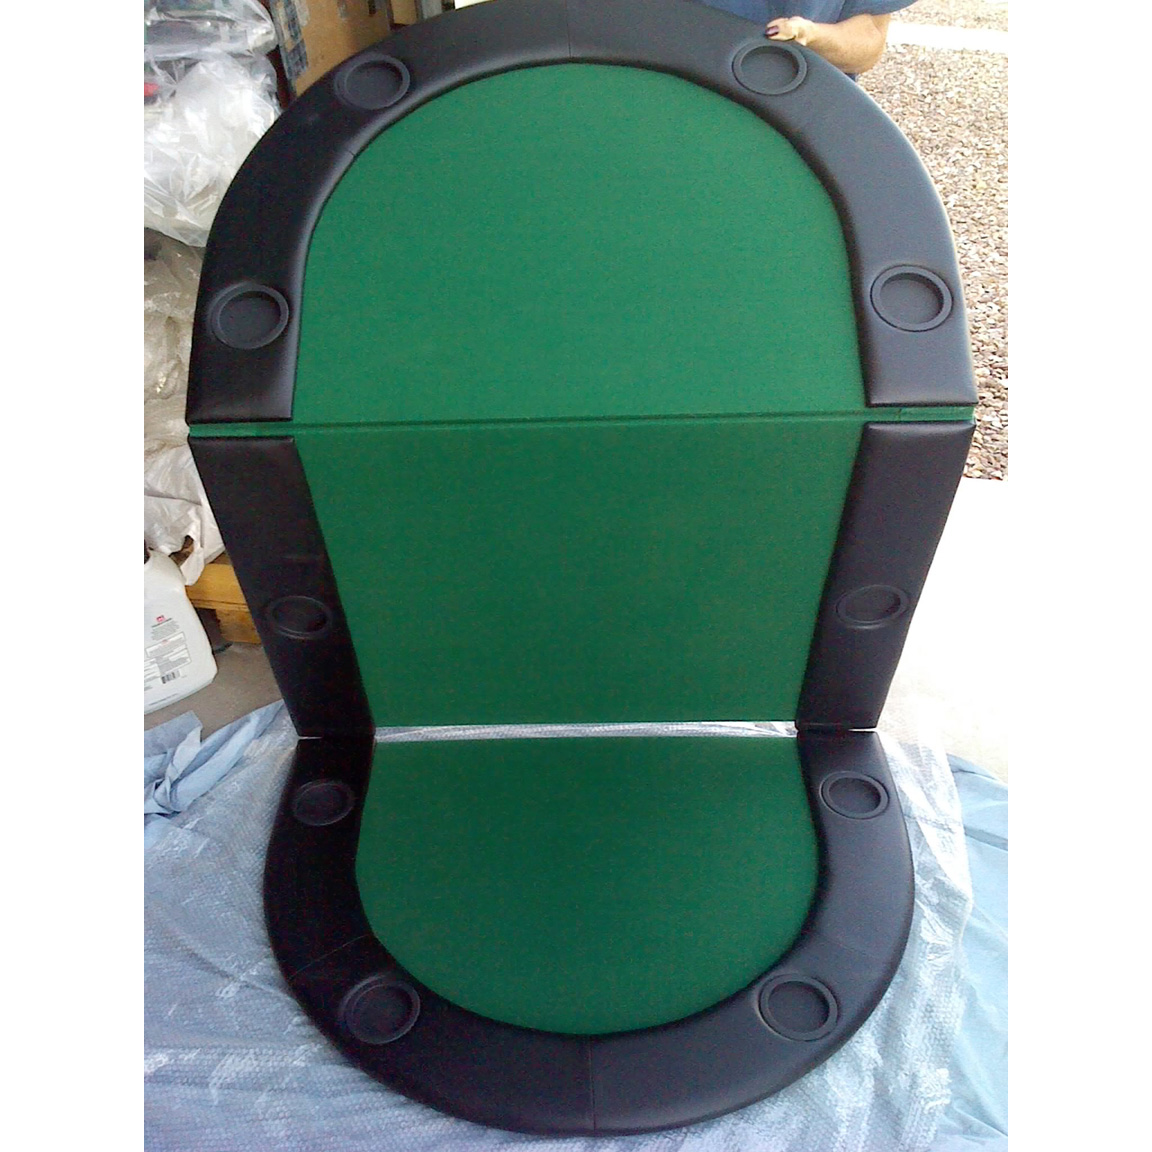 Poker Table Top With Cup Holders. Home · Casino Tables · Poker Tables; Poker  Table Top With Cup Holders